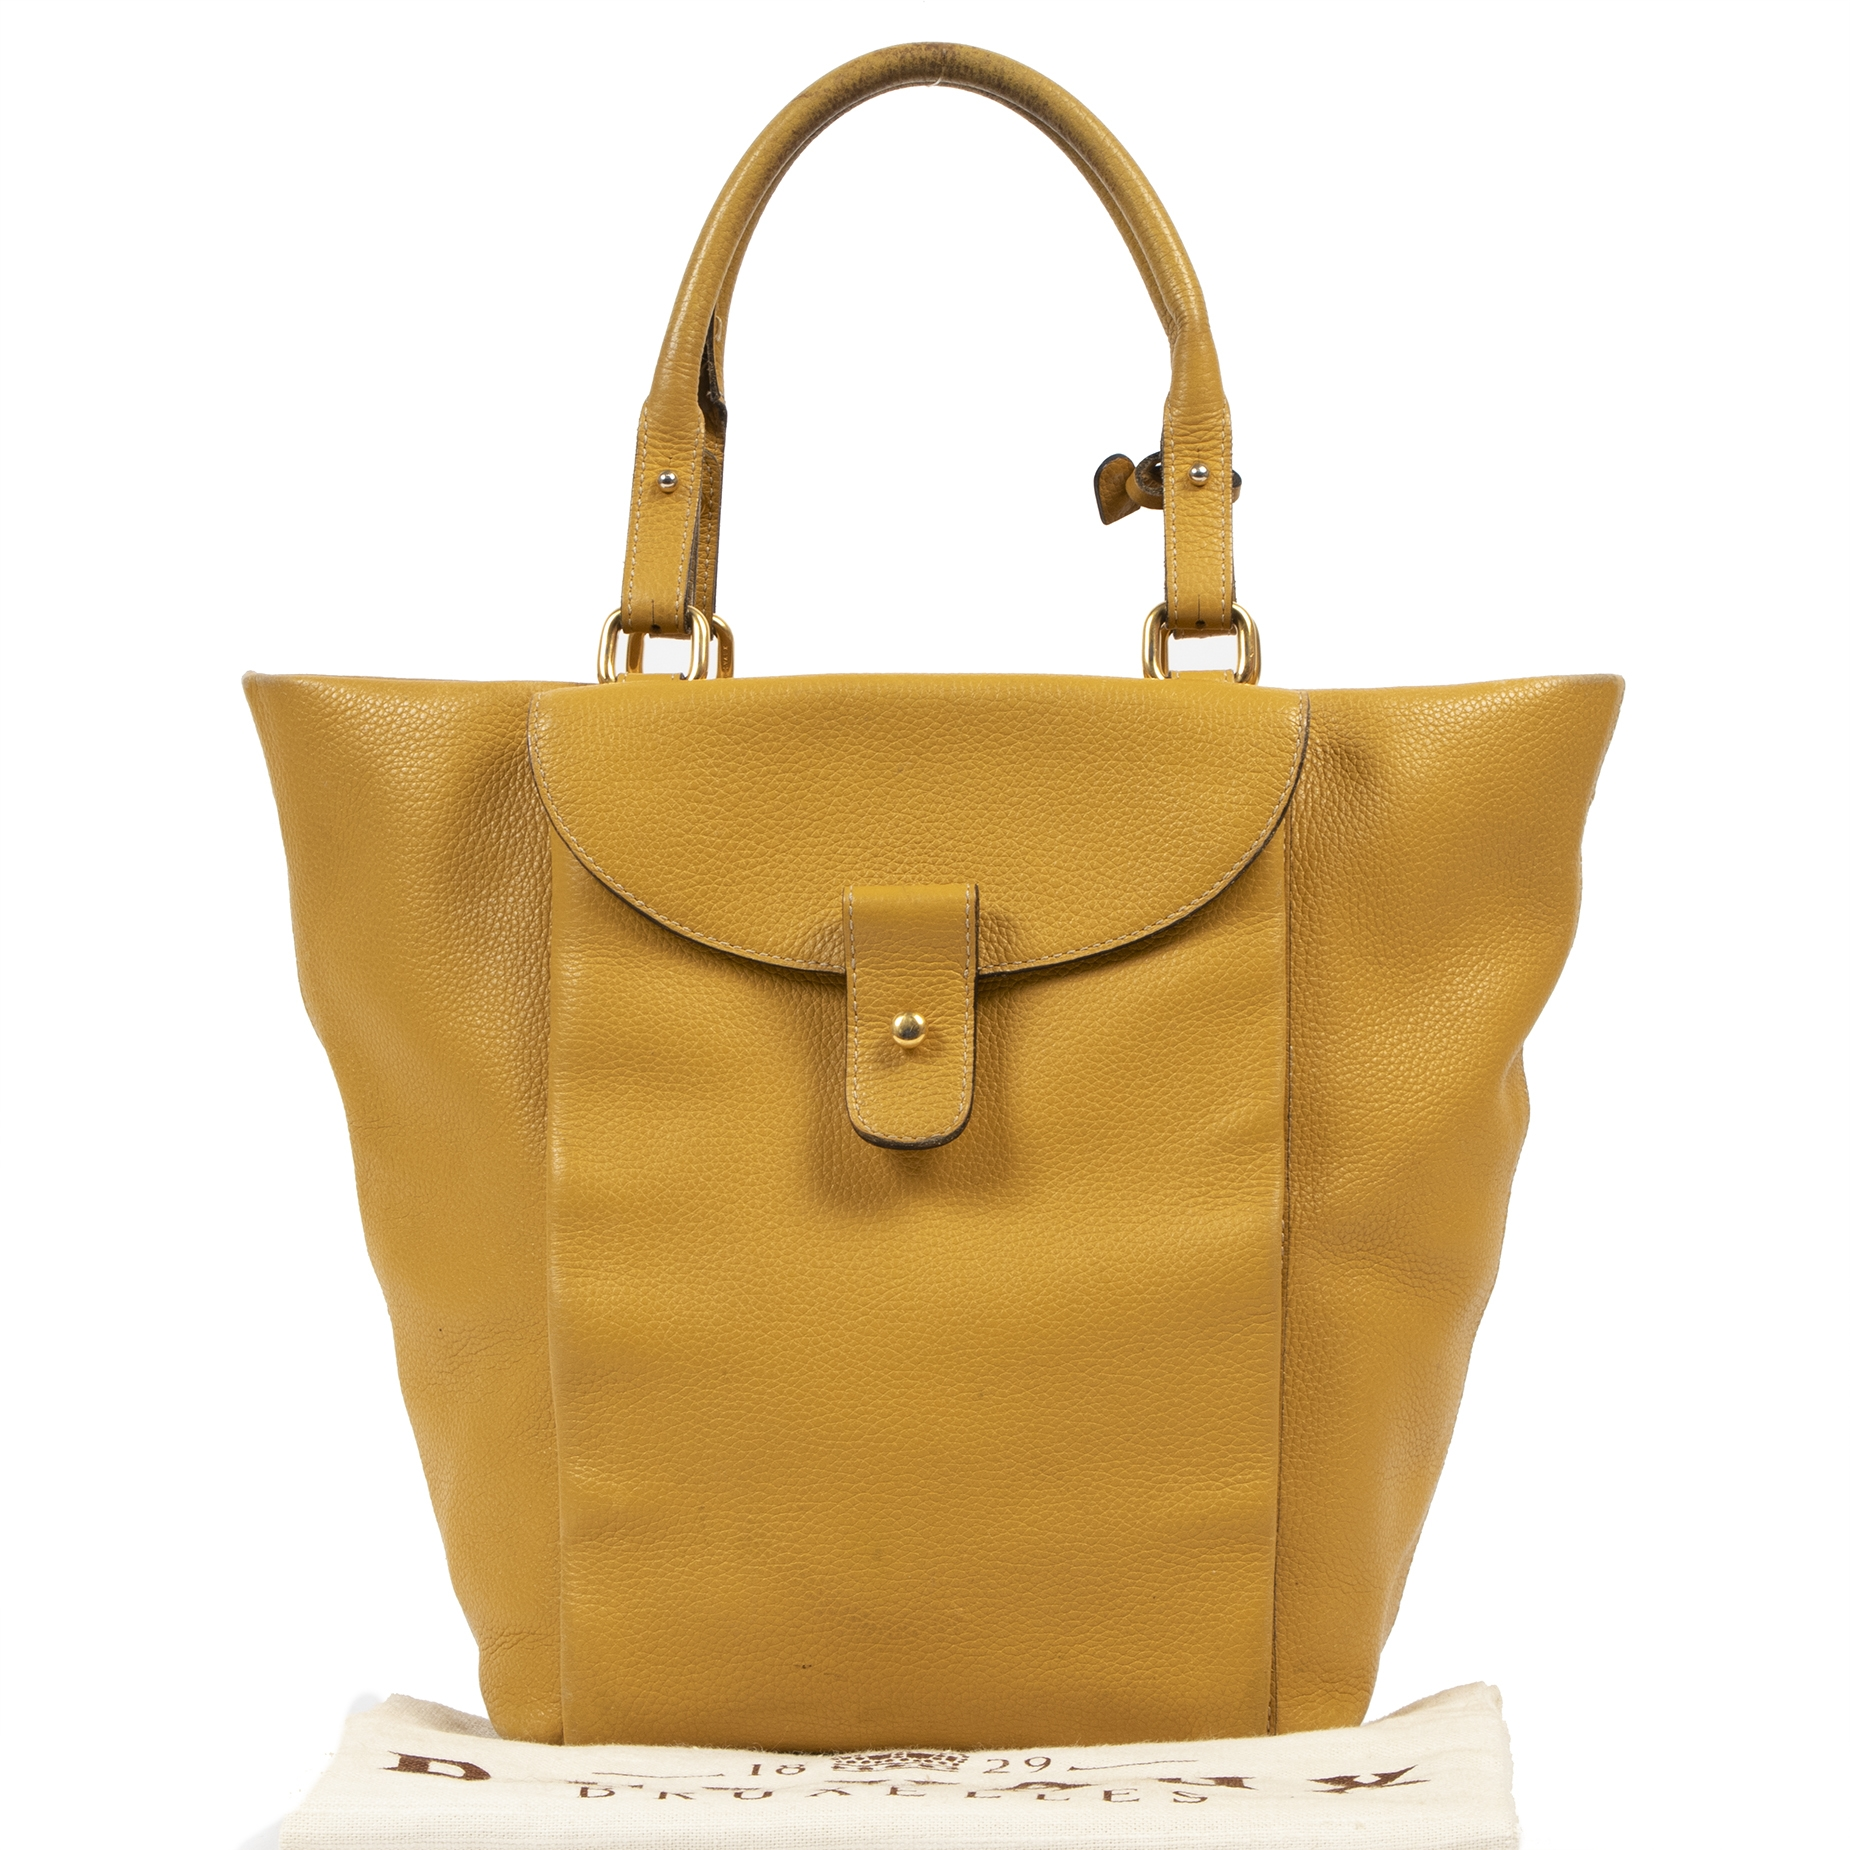 Authentic second-hand vintage Delvaux Mustard Leather Tote Bag buy online webshop LabelLOV